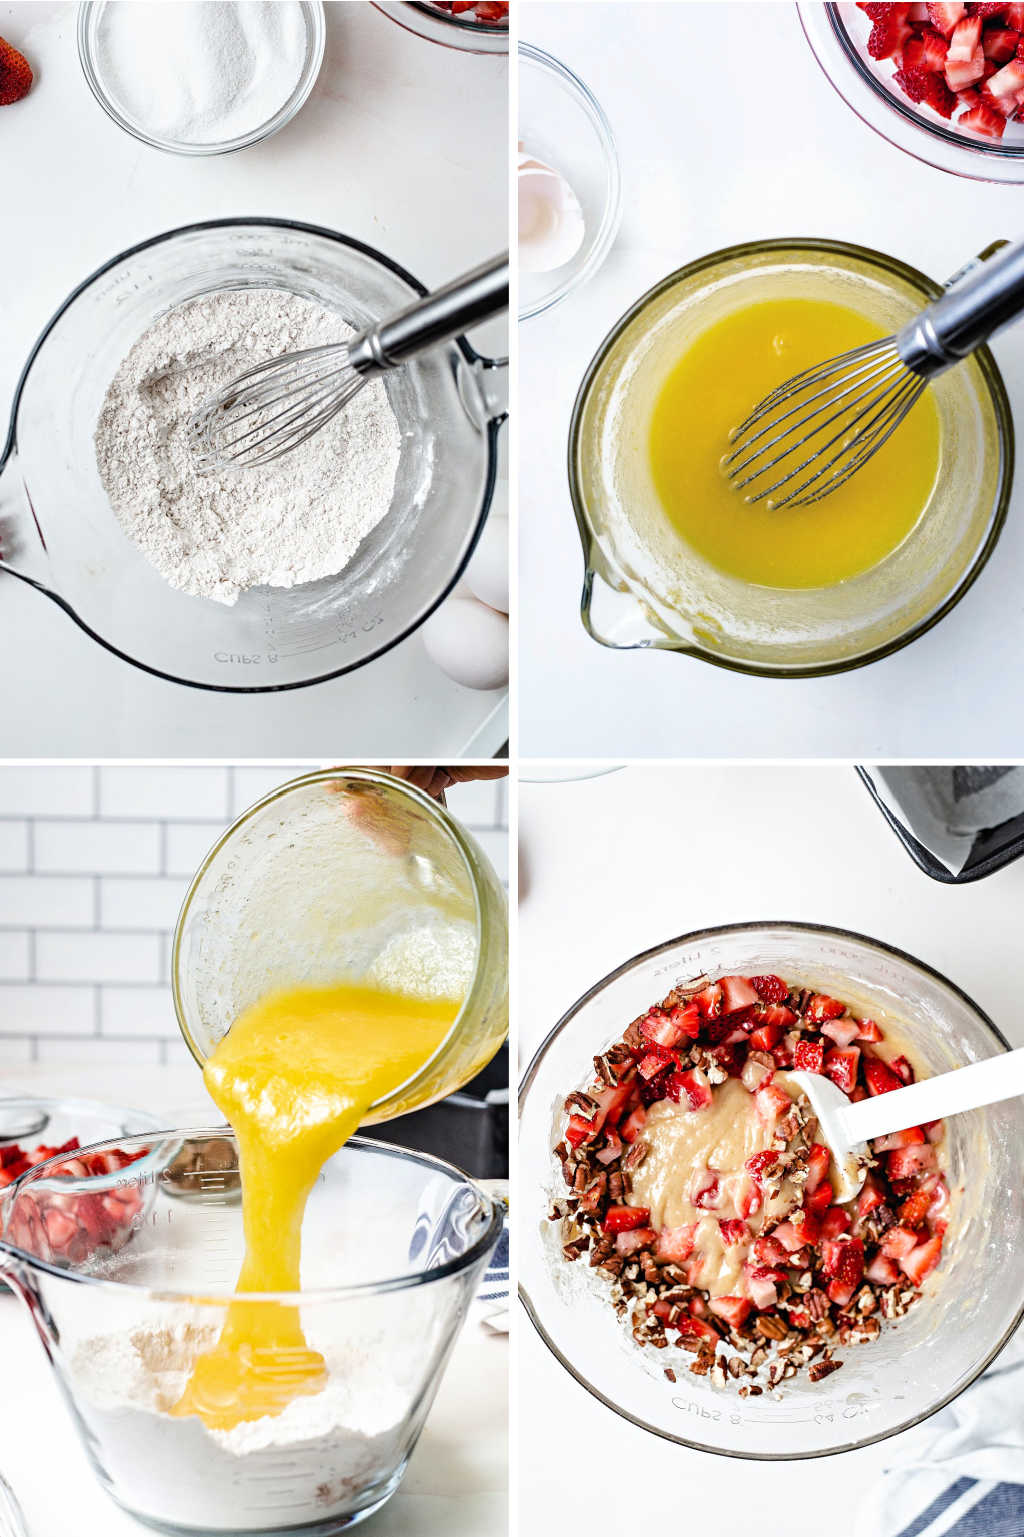 process steps for making batter for strawberry bread.